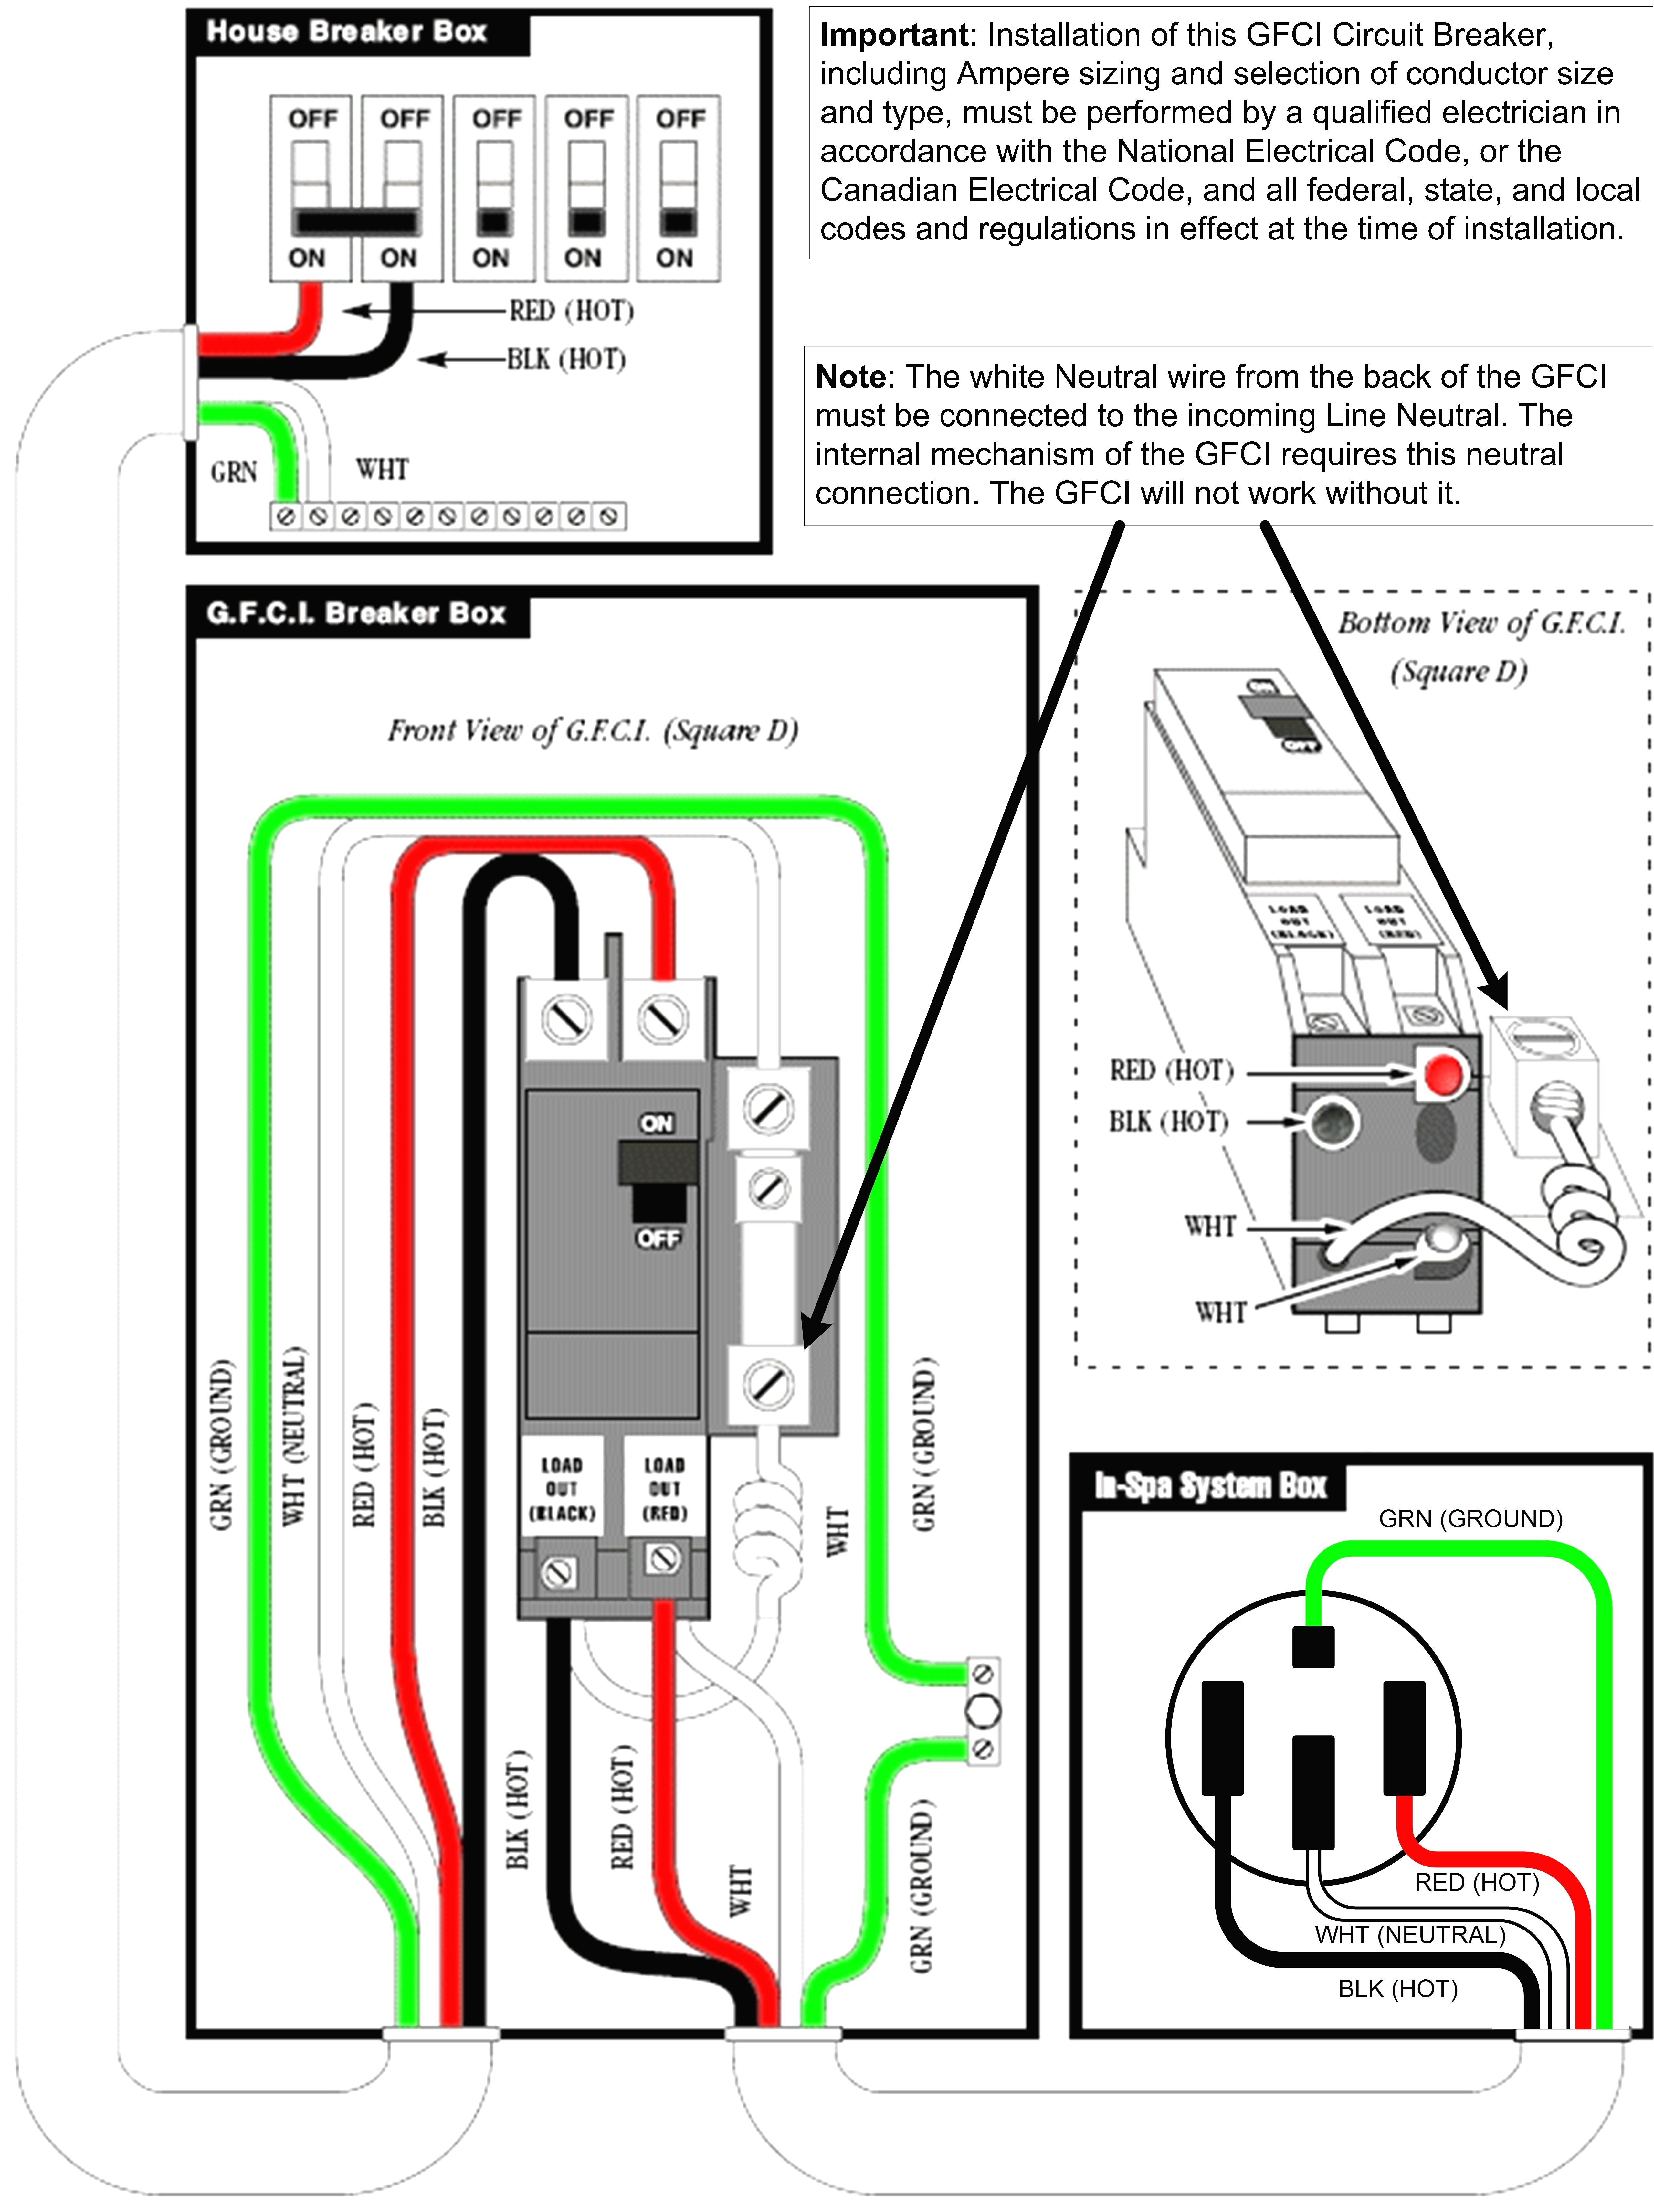 Hot Tub Wiring Schematic Electrical Diagram Schematics 220 Volt 4 Wire Block And Diagrams U2022 Jacuzzi Instructions